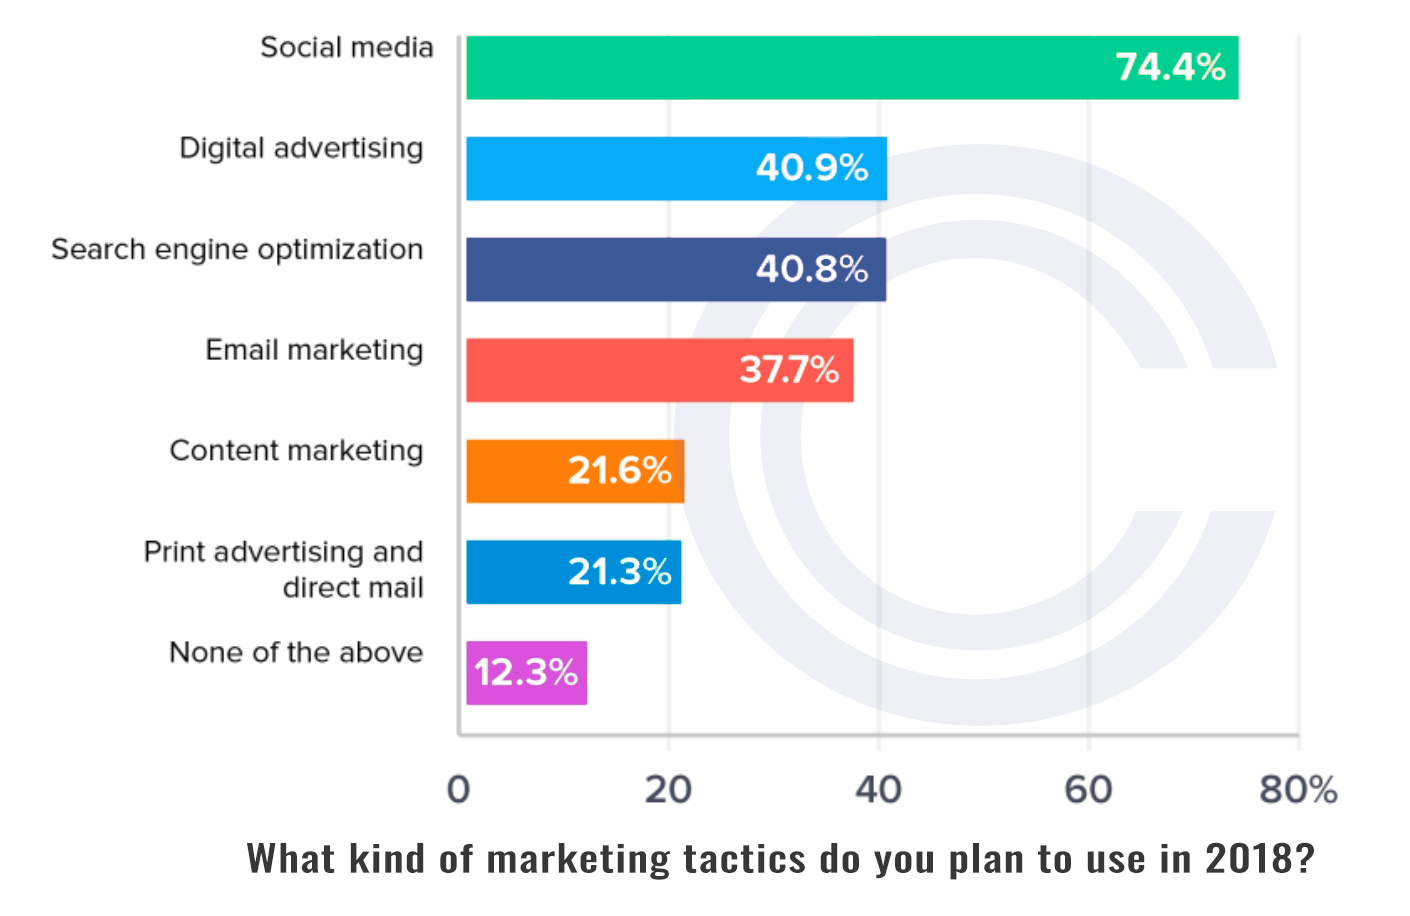 74% of businesses are planning to use social media more